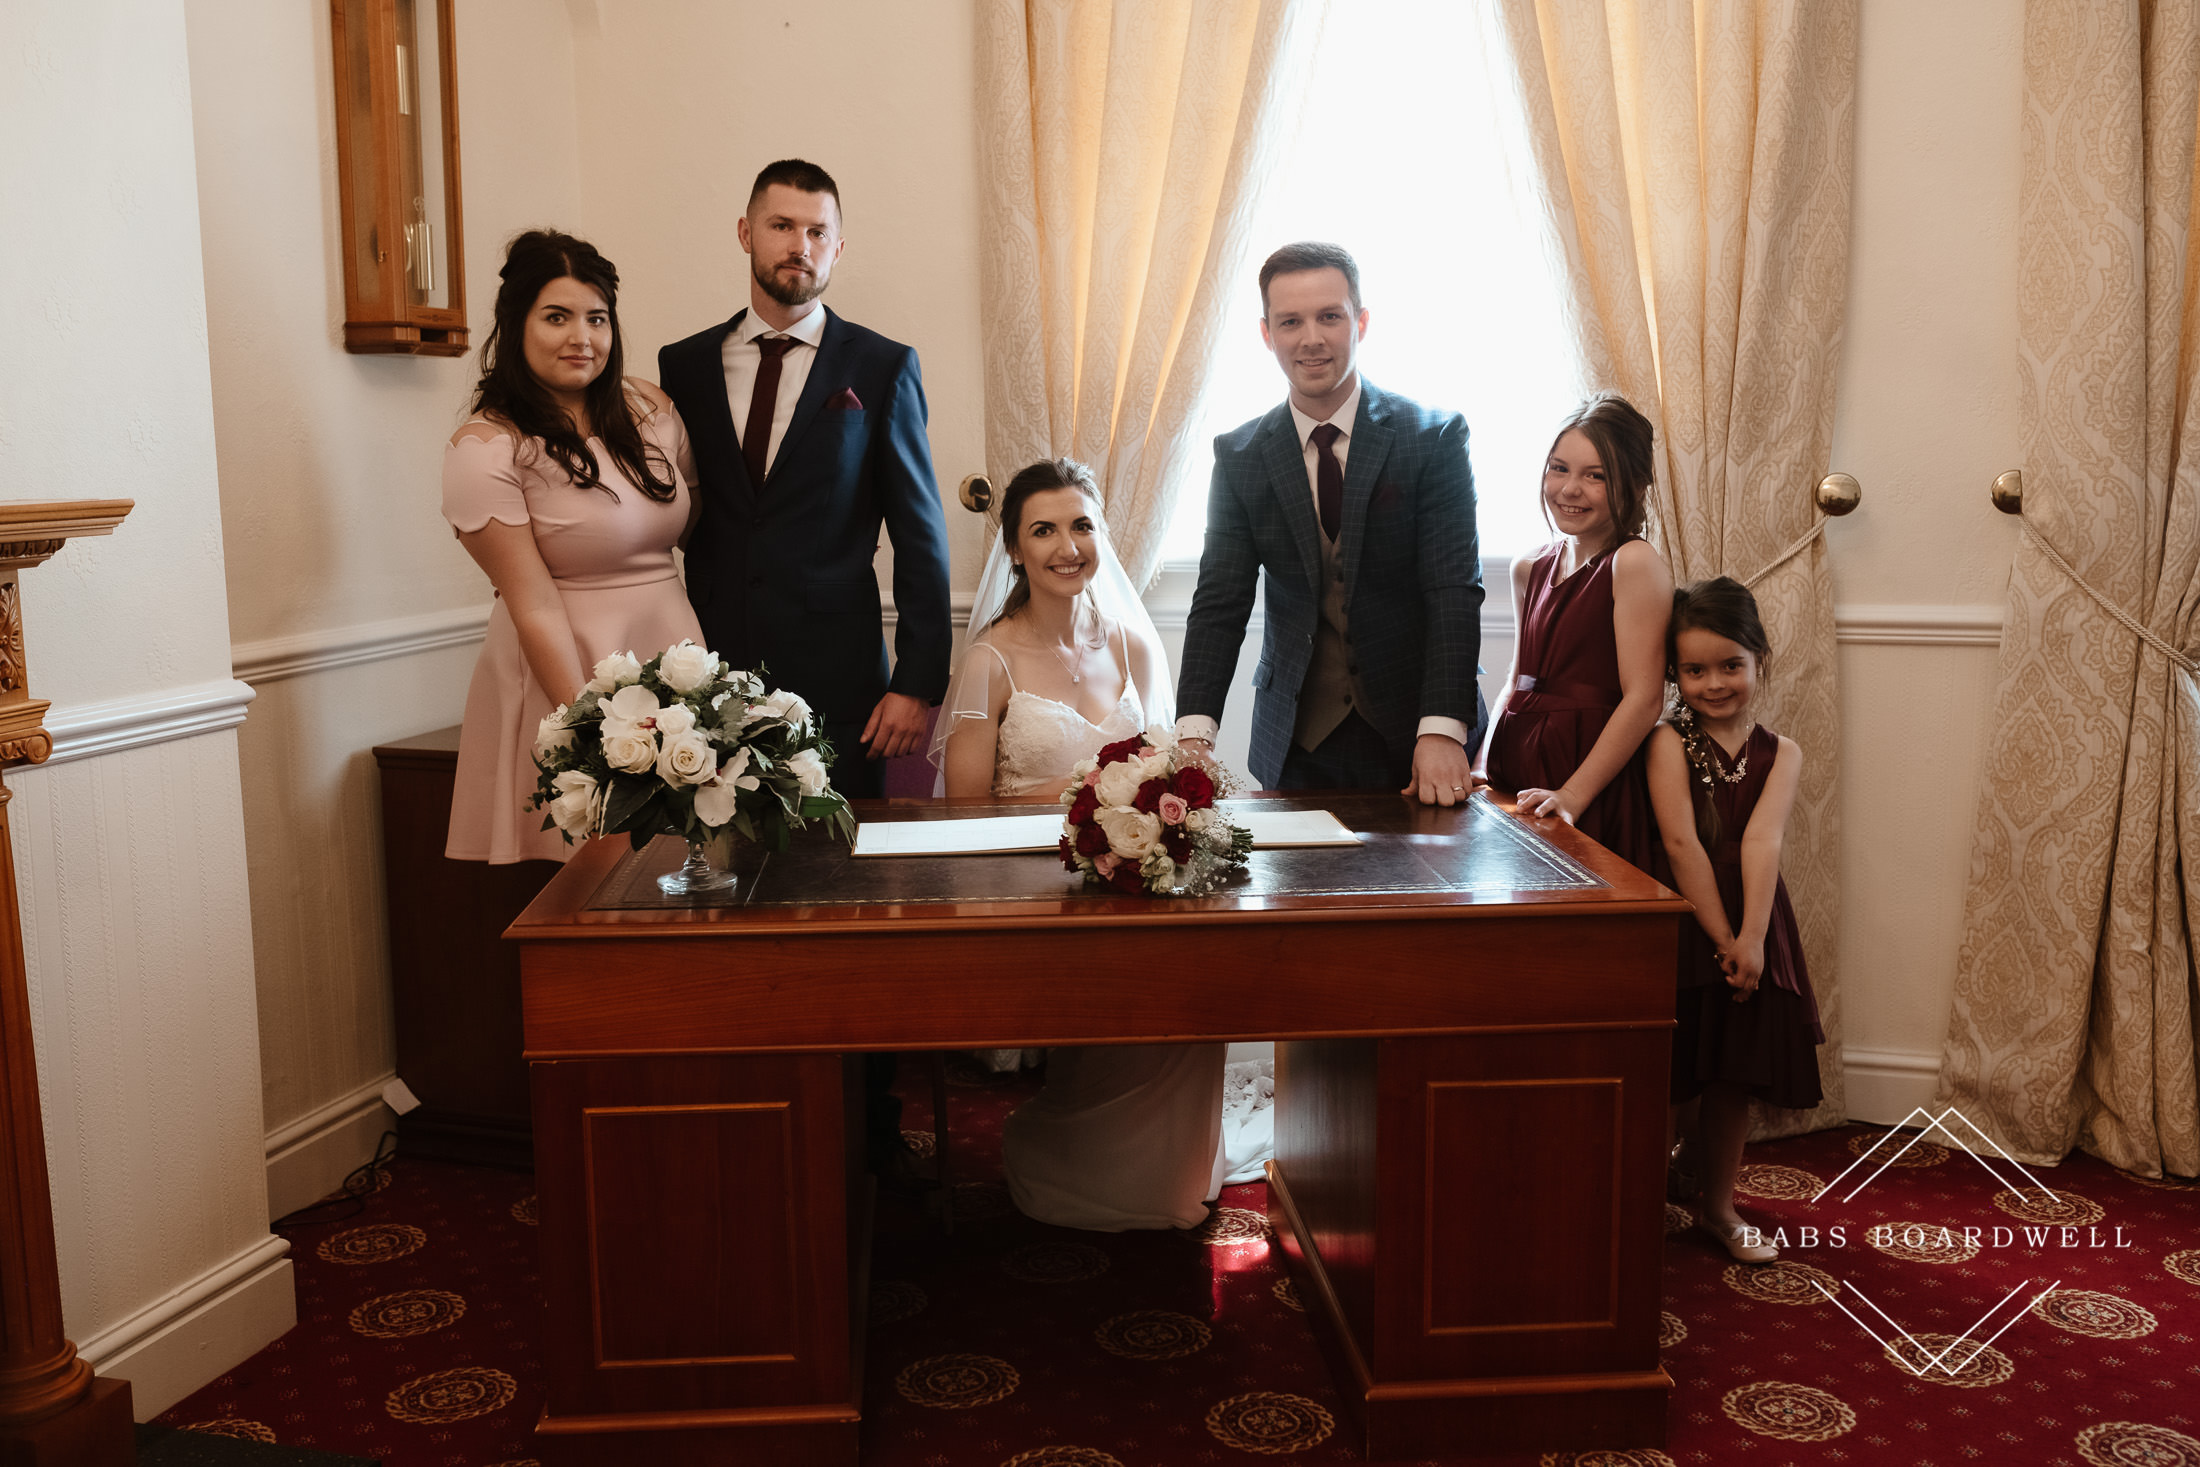 bride and groom with their bridesmaid, best man and flower girls at Llandudno Registry Office by North Wales Wedding Photographer